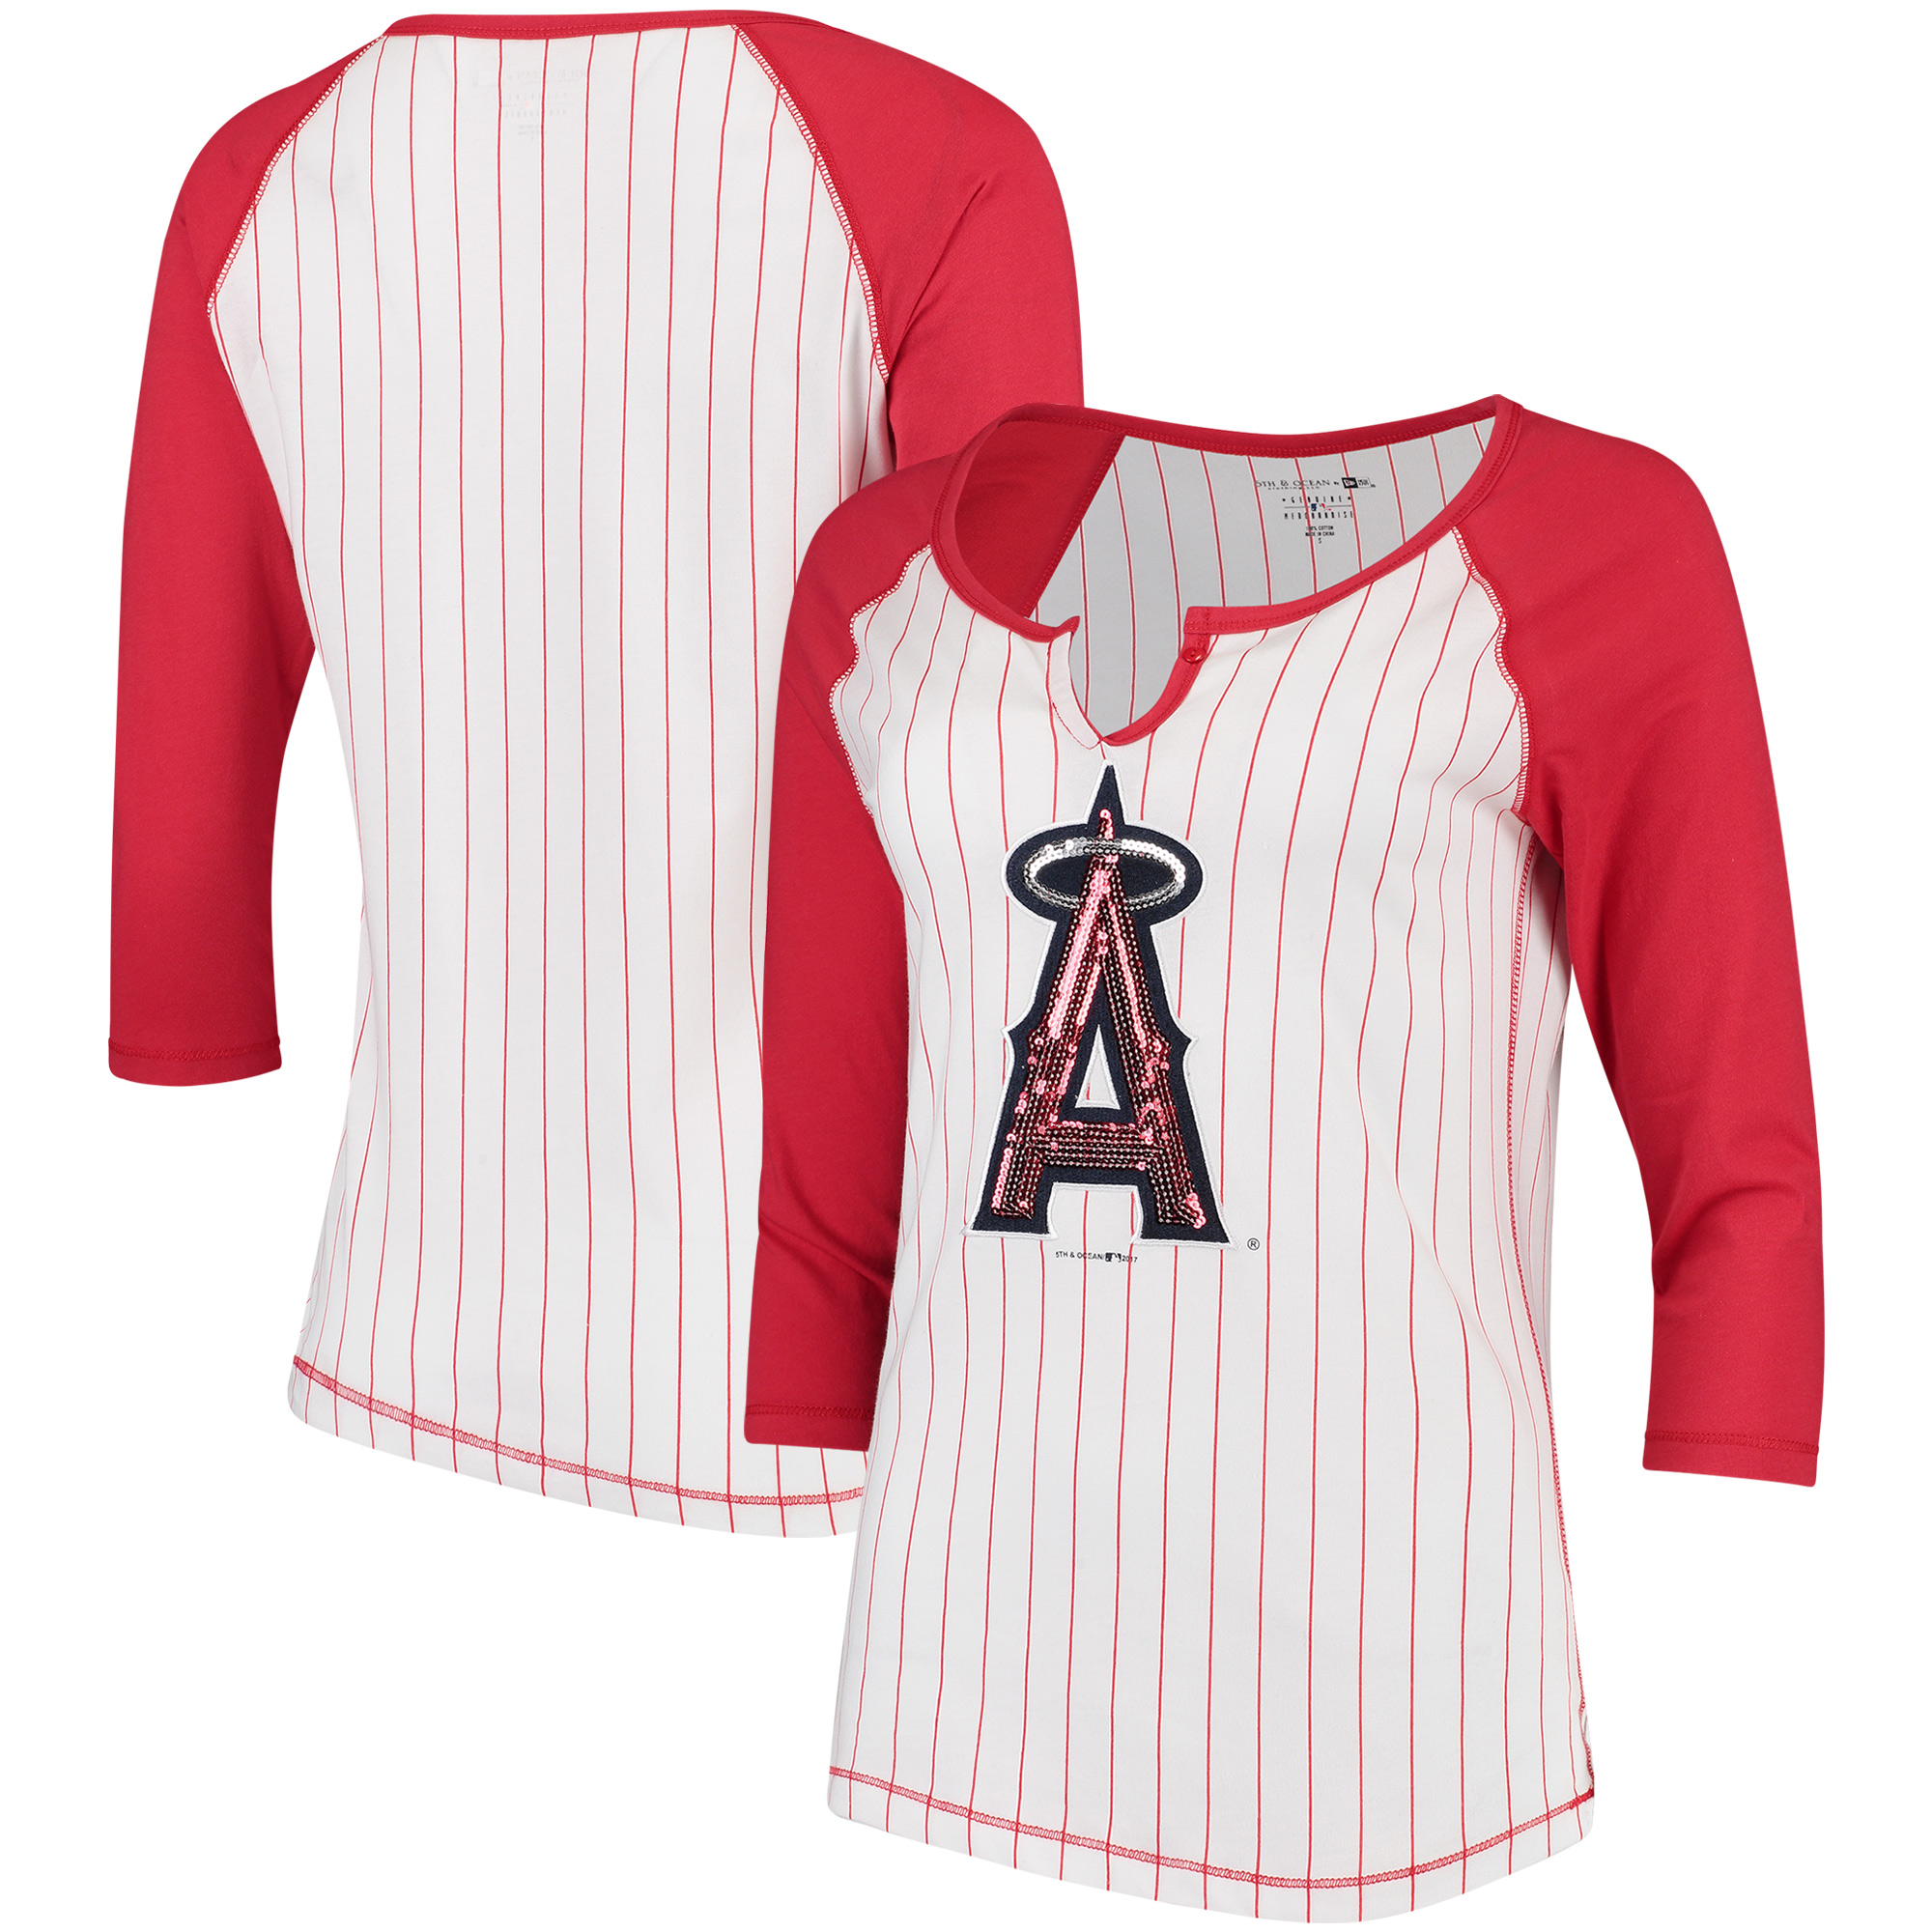 Los Angeles Angels 5th & Ocean by New Era Women's Pinstripe 3/4-Sleeve Notch Neck Raglan T-Shirt - White/Red